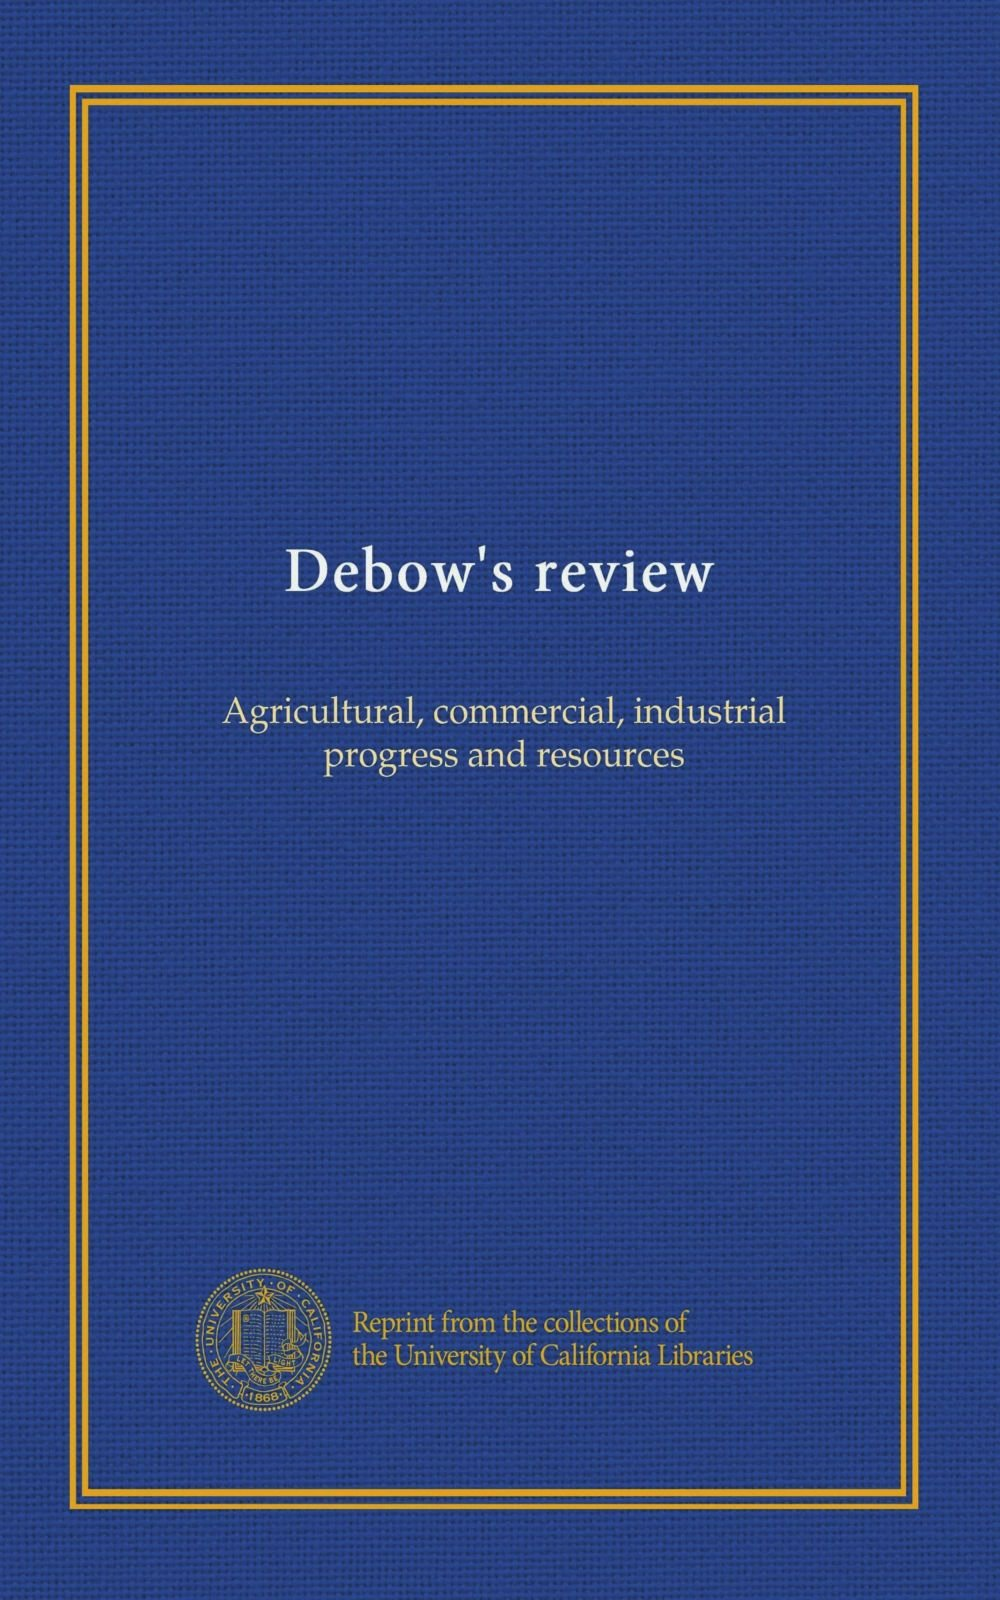 Download Debow's review (v.6): Agricultural, commercial, industrial progress and resources pdf